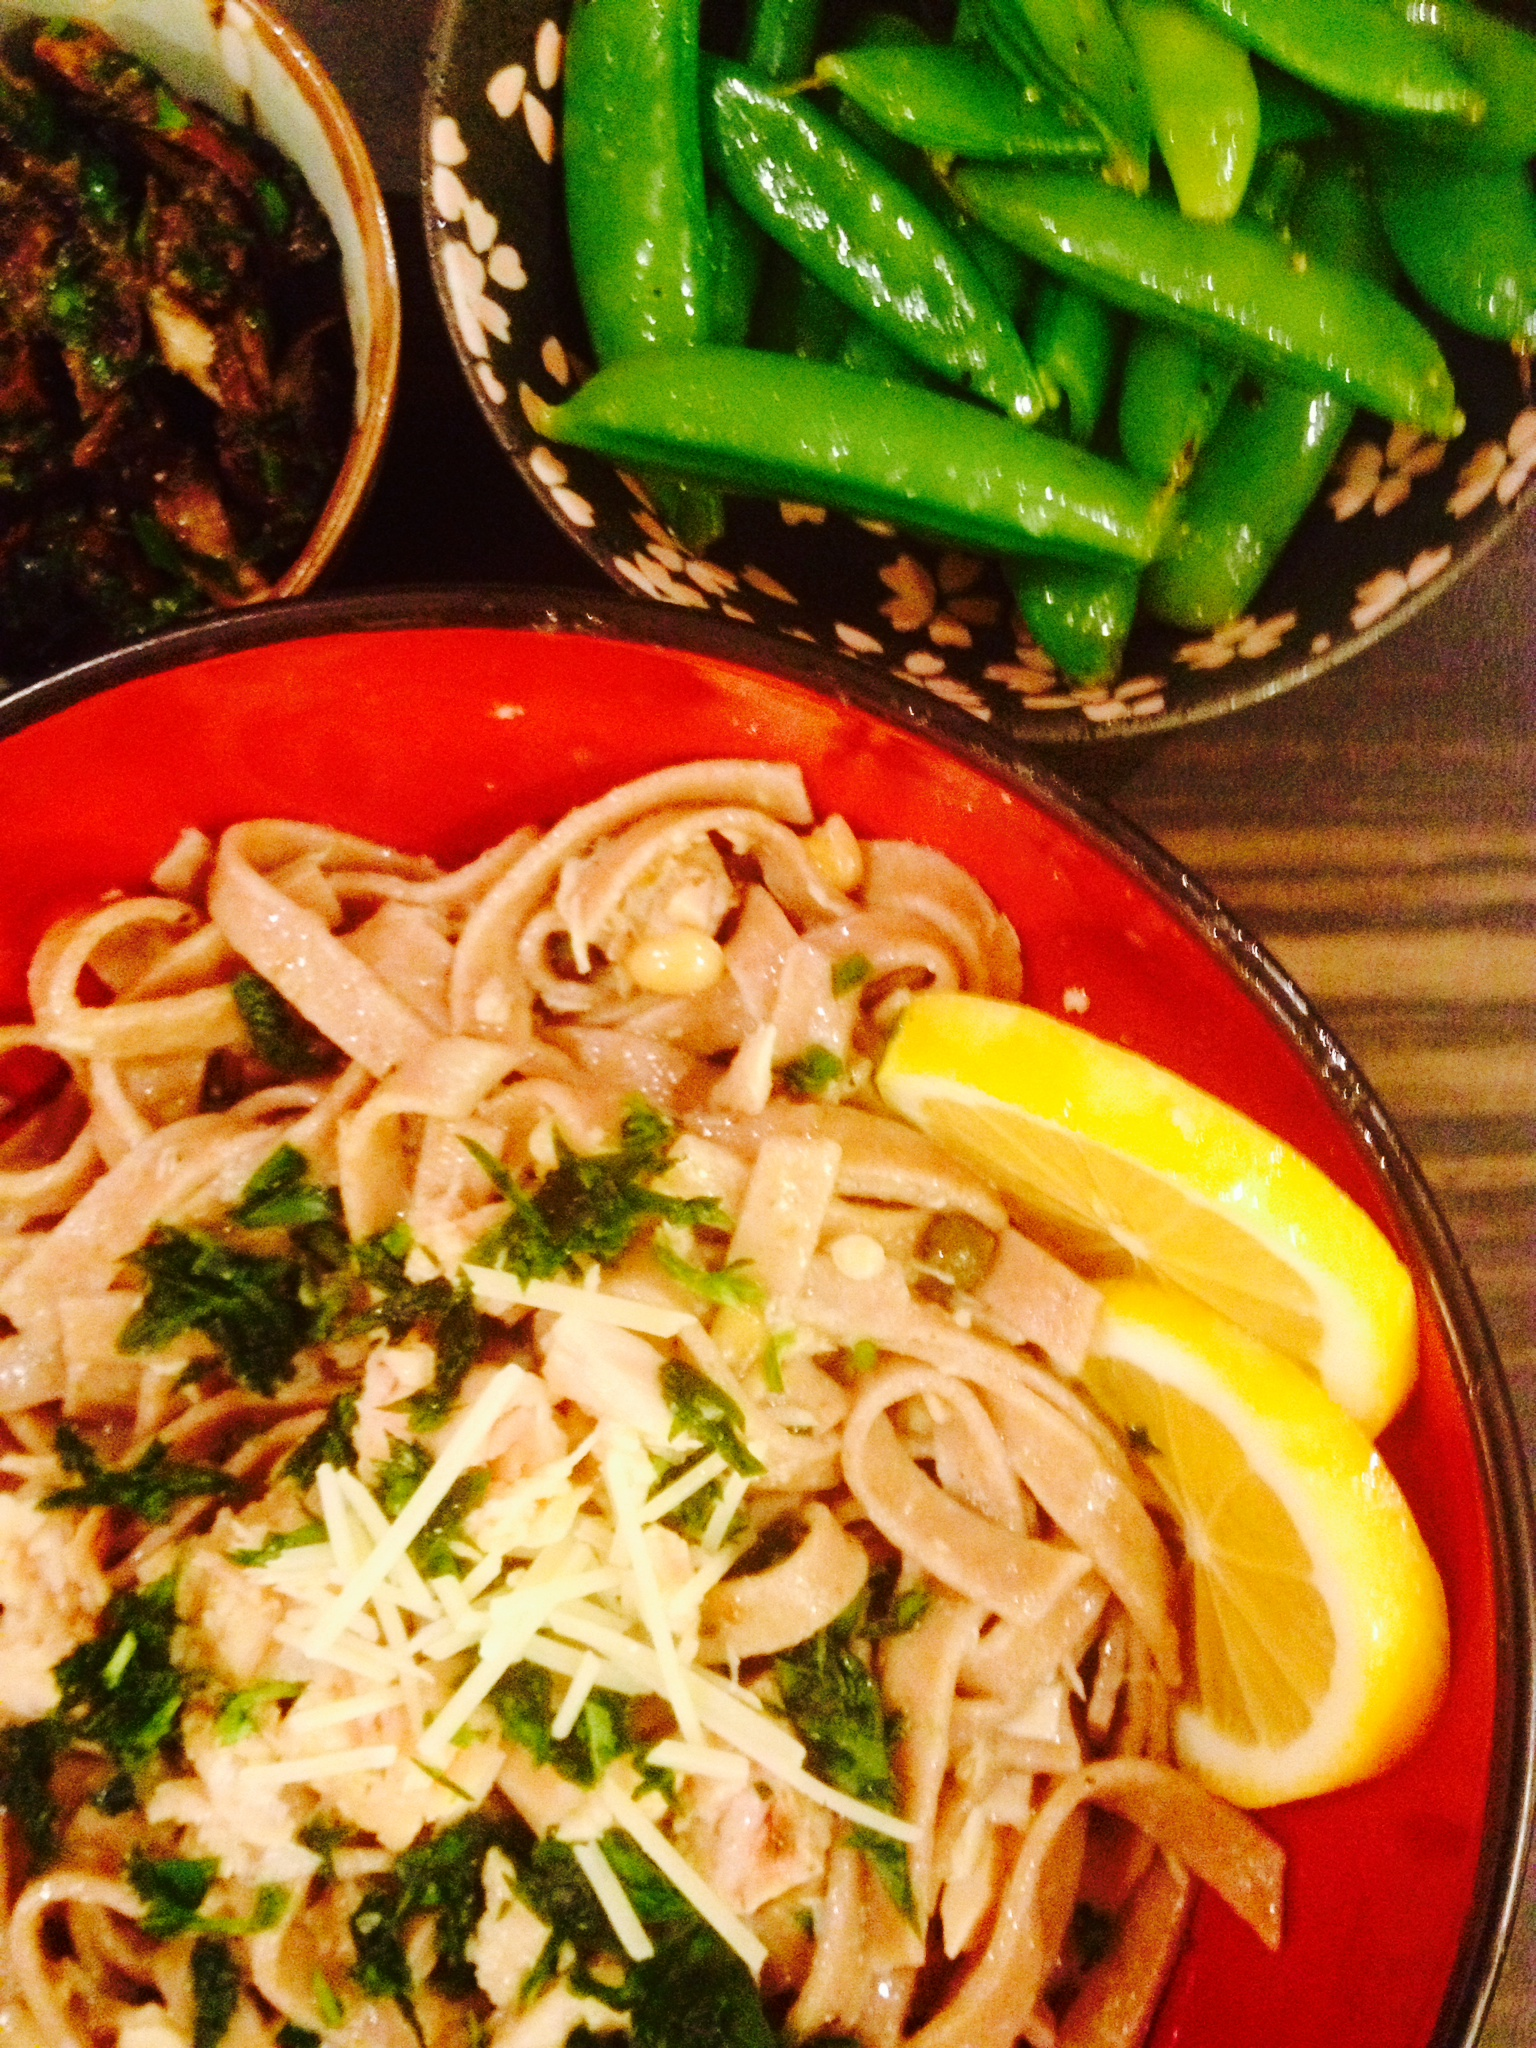 fancy tuna pasta with sides :: by radish*rose